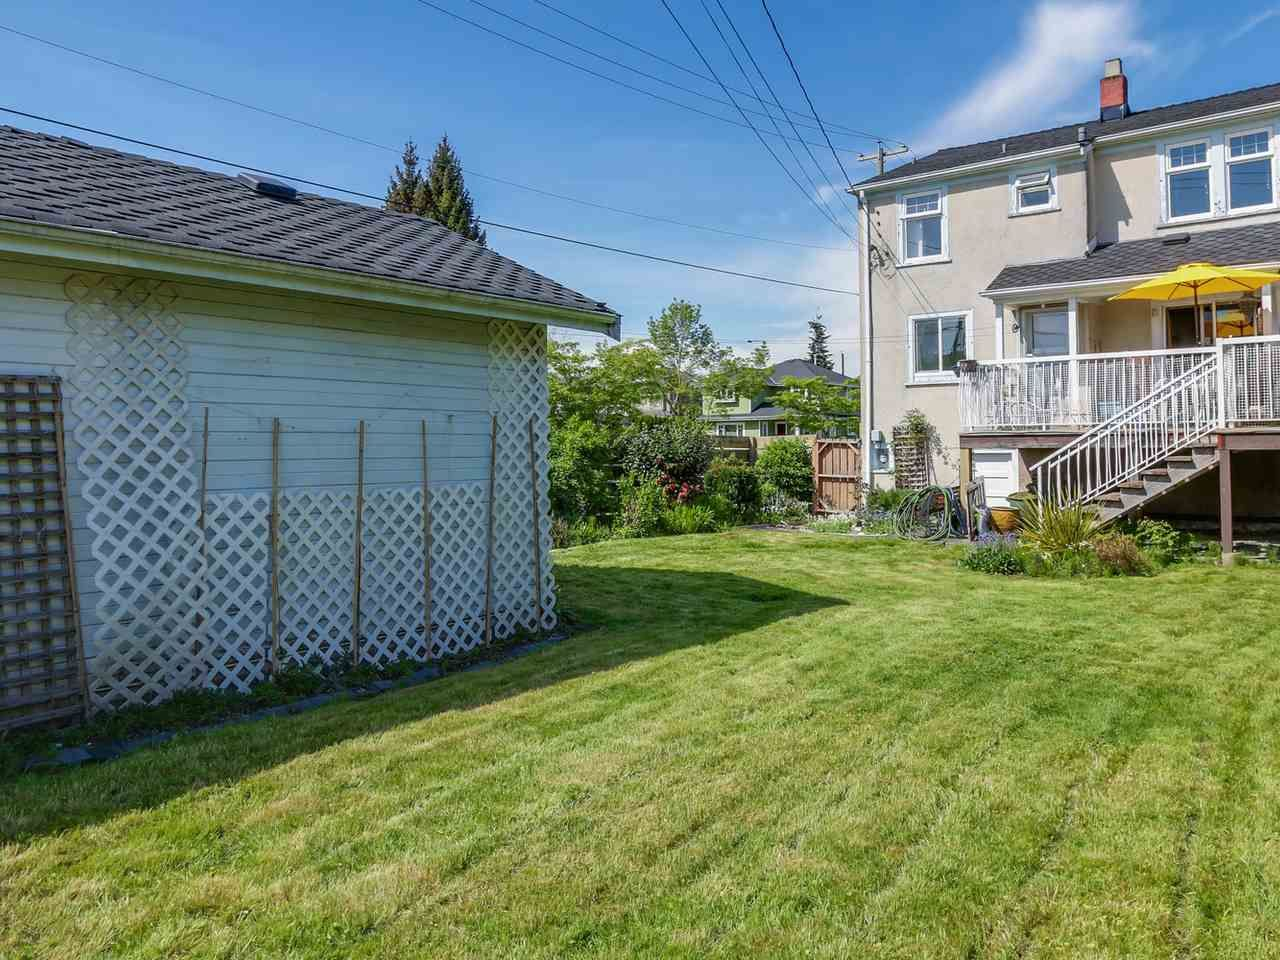 Photo 17: Photos: 2796 W 21ST Avenue in Vancouver: Arbutus House for sale (Vancouver West)  : MLS®# R2078868